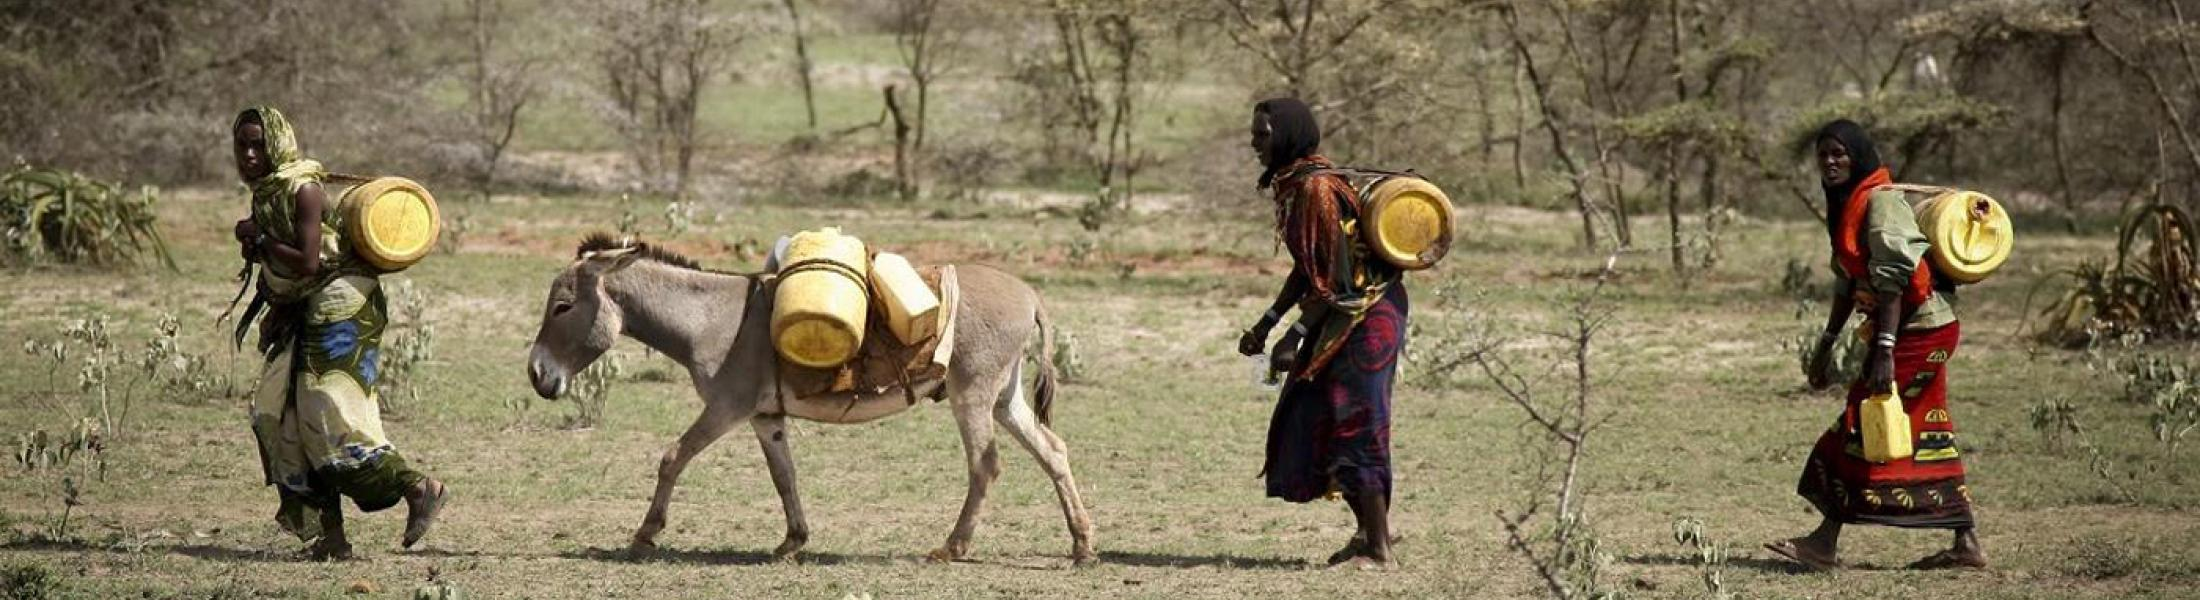 3 women and one donkey walk from right to left, carrying large yellow jugs of water on their backs.